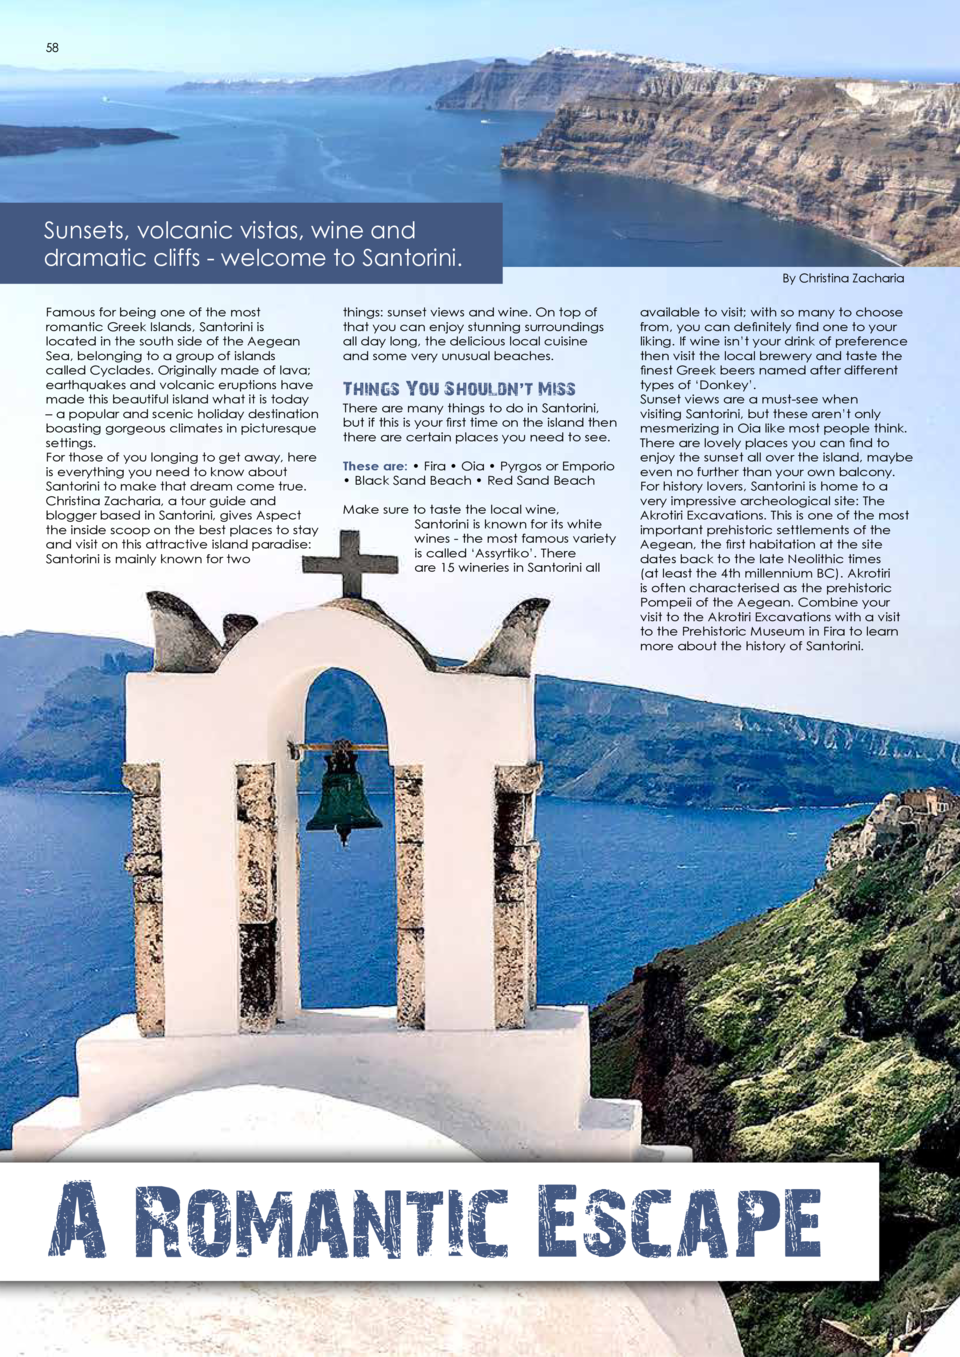 58  59  Sunsets, volcanic vistas, wine and dramatic cliffs - welcome to Santorini. Famous for being one of the most romant...